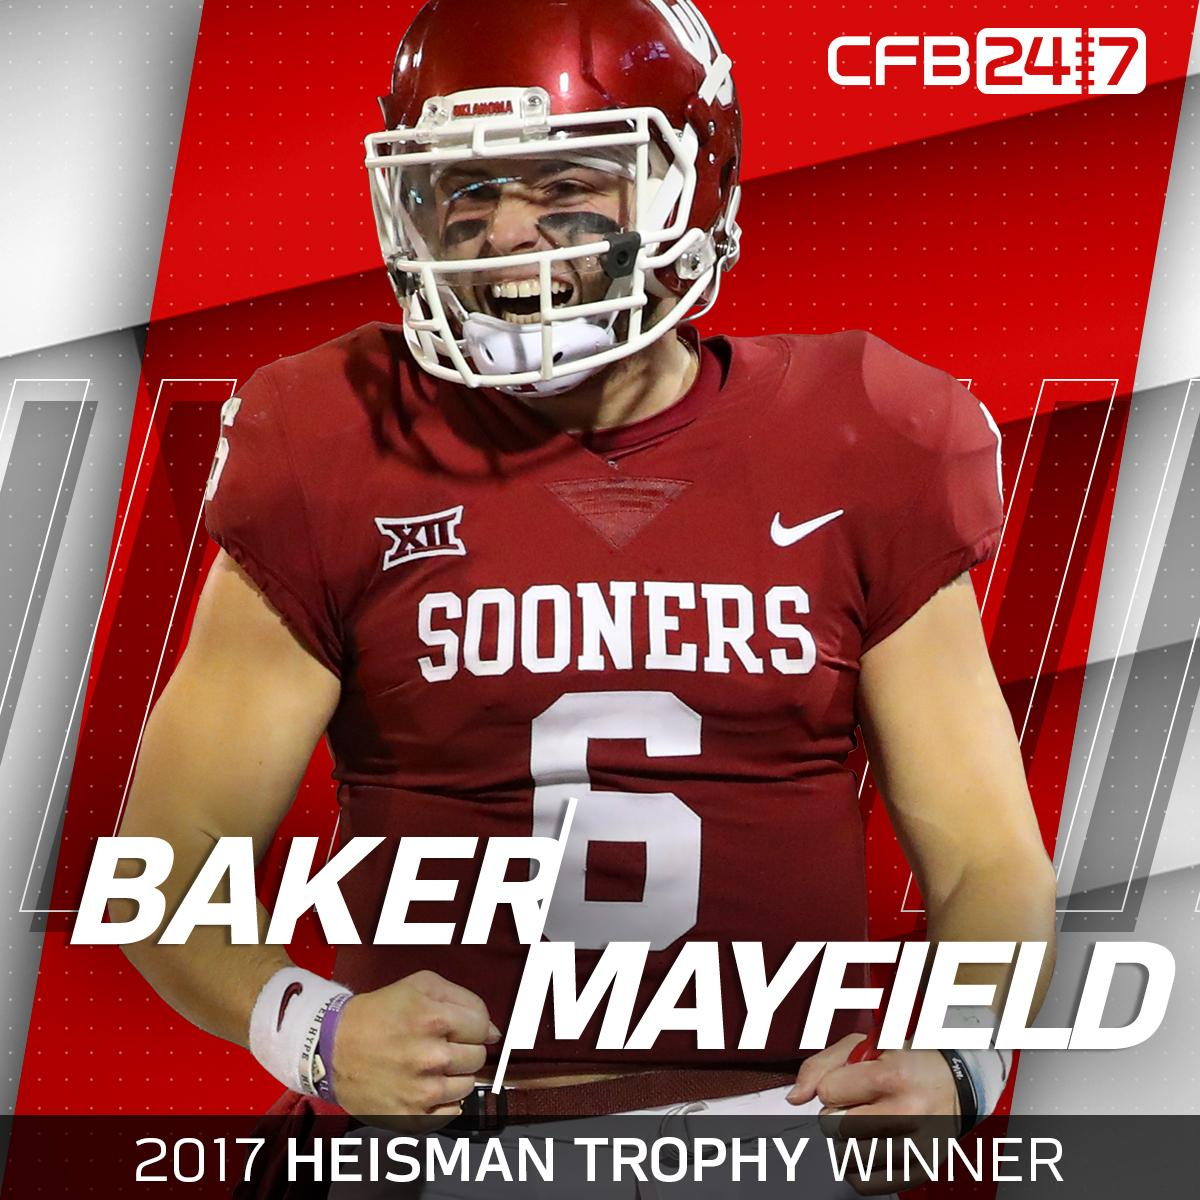 The 2017 #Heisman Trophy goes to @OU_Football's Baker Mayfield!